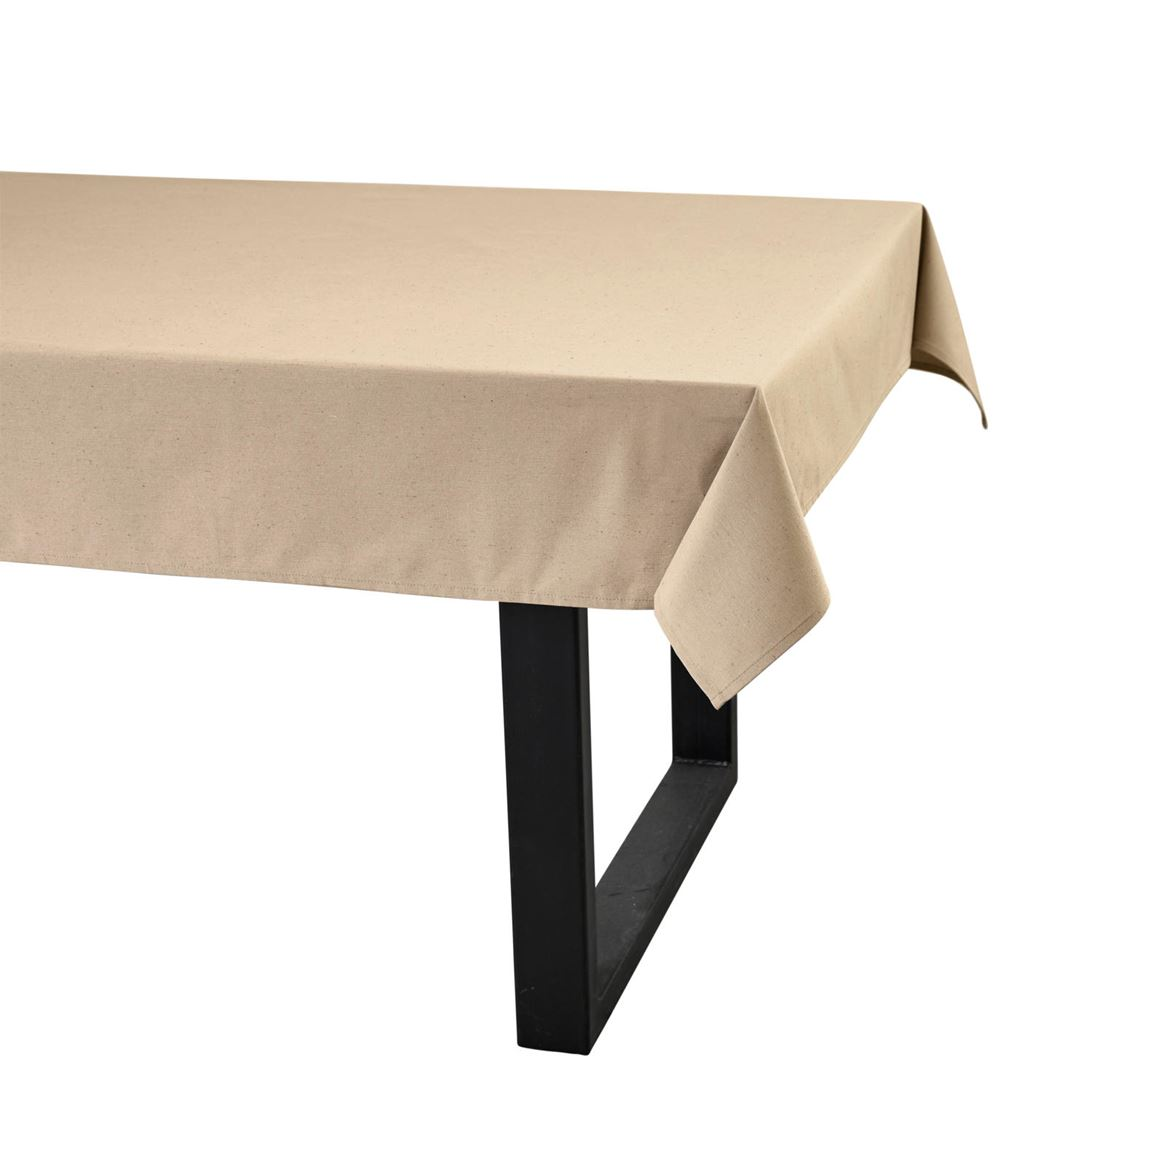 RECYCLE Tischtuch Taupe B 138 x L 250 cm_recycle-tischtuch-taupe-b-138-x-l-250-cm